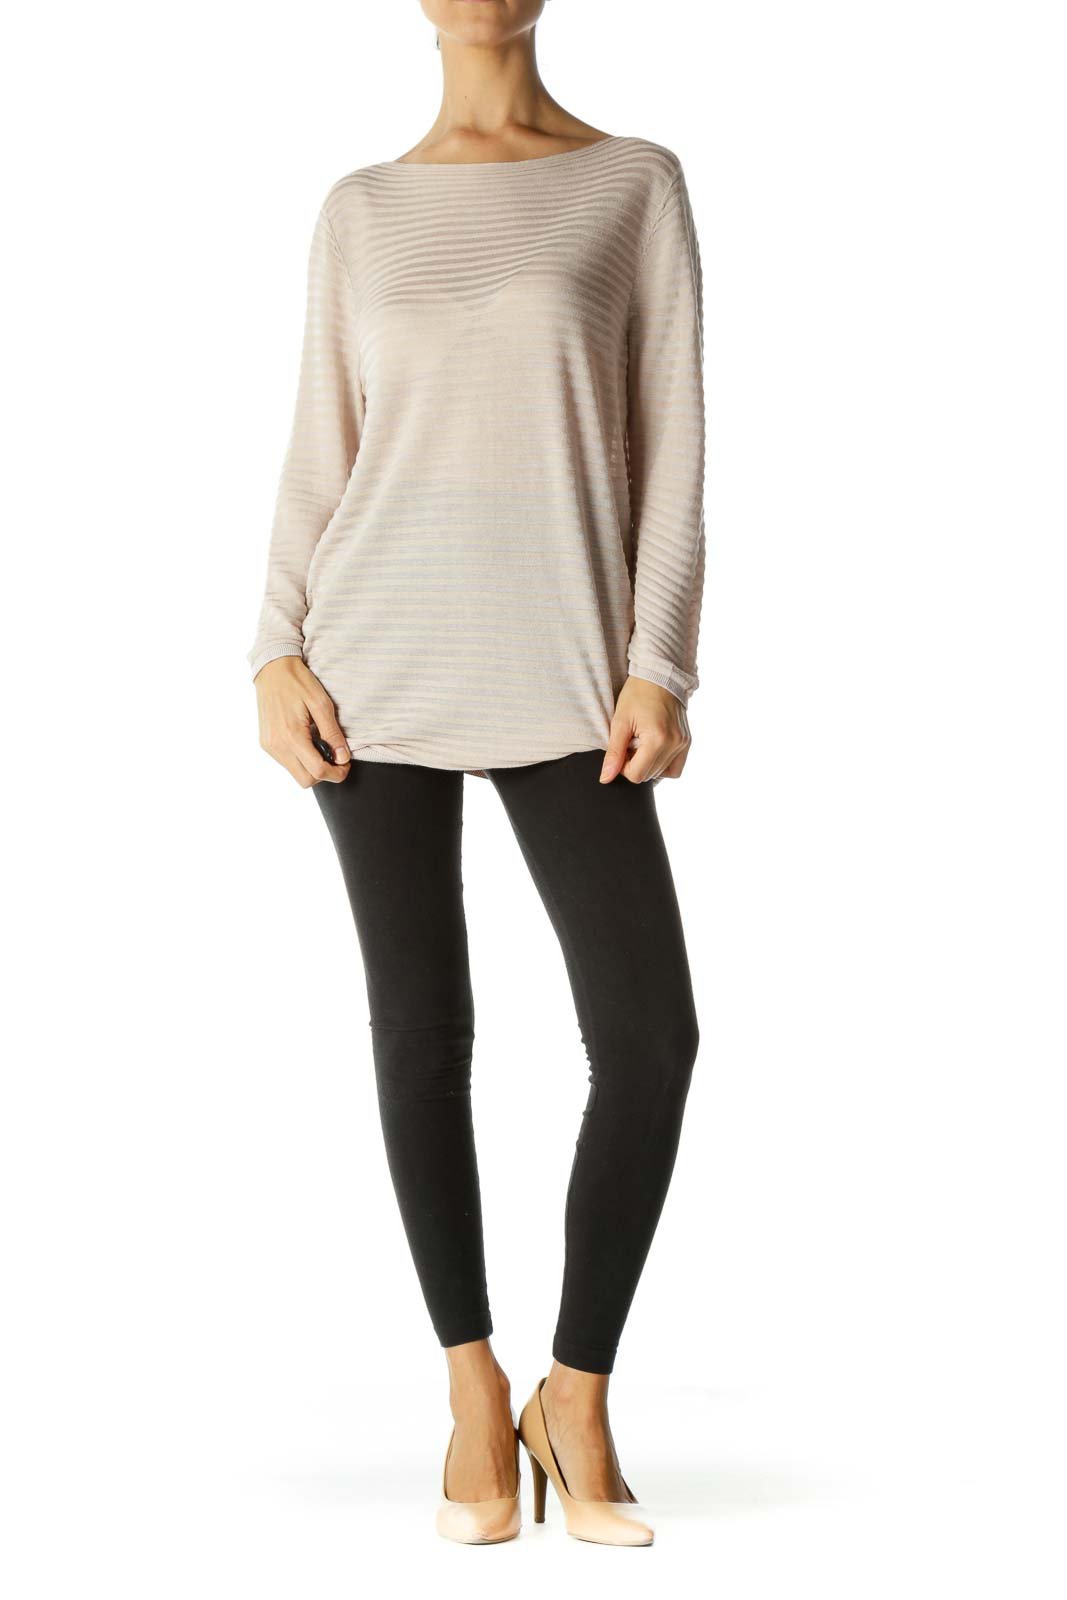 Beige Boat Neck Textured Stretch Light-Weight Knit Top